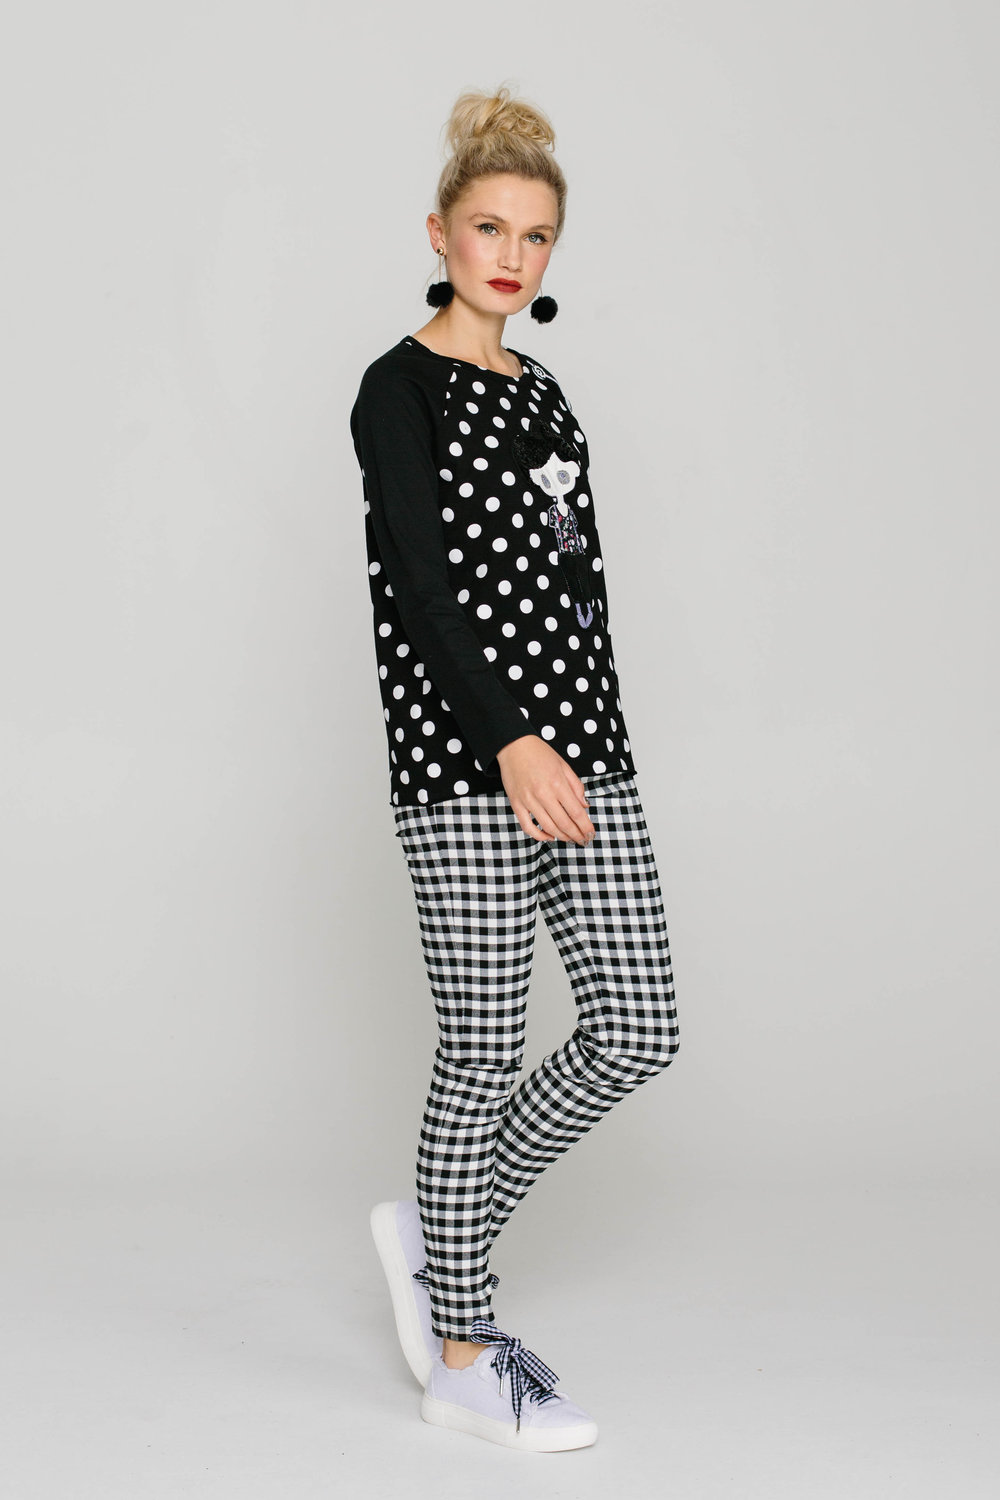 6141W Rock N Roll Jumper Spotty 5561W New Joseph Pant Rupert Bear Plain